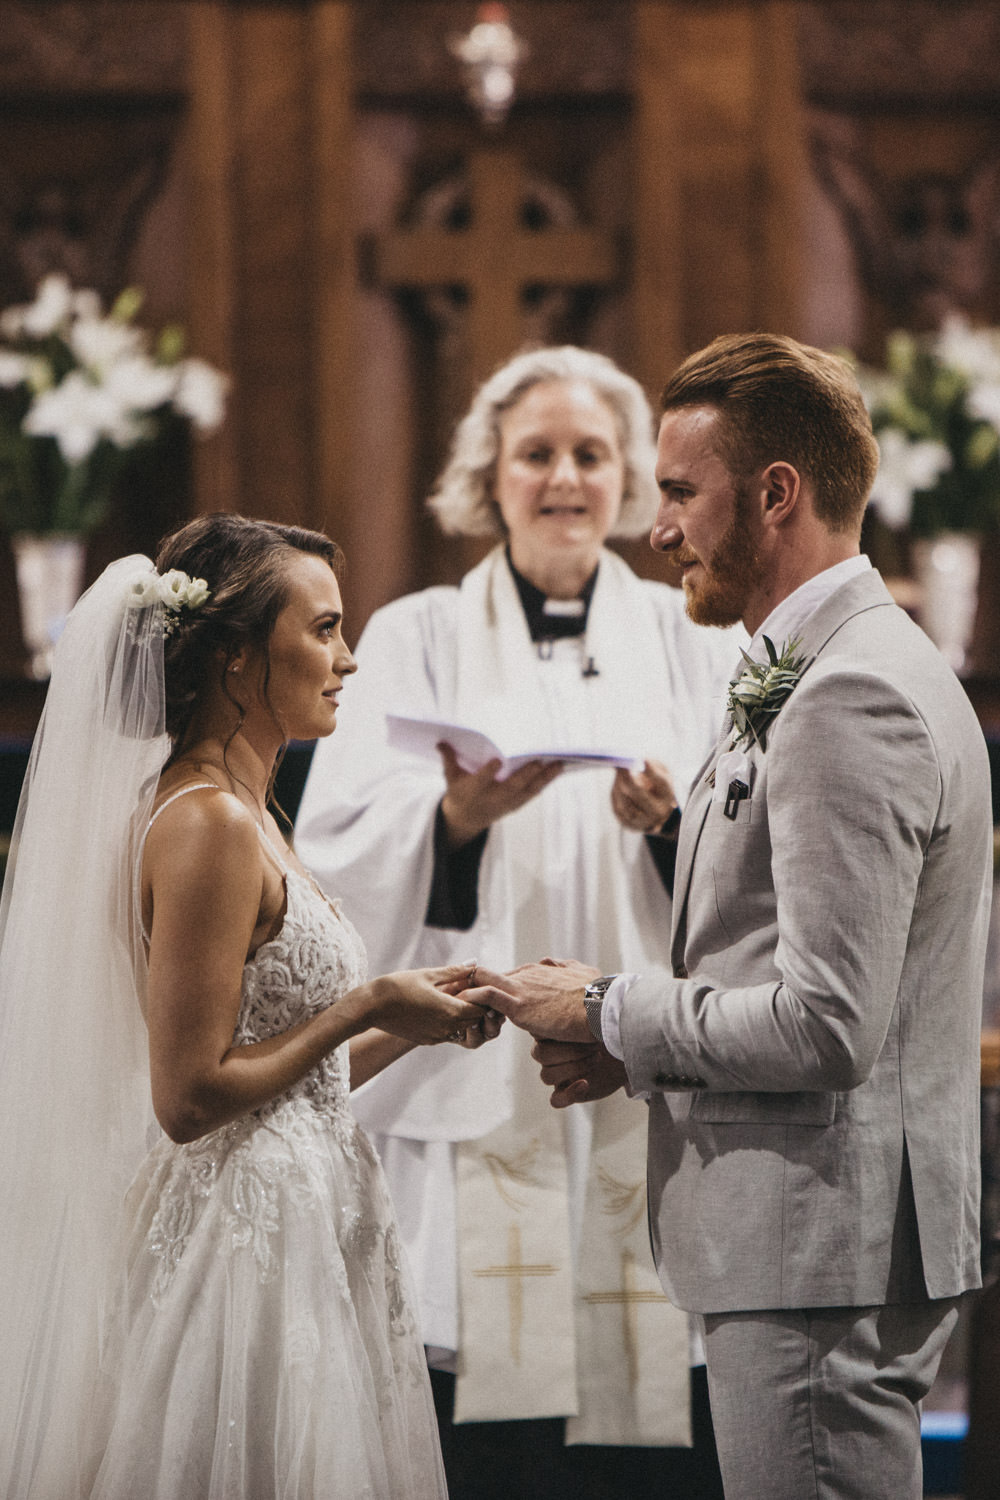 bride and groom exchange rings in intimate church wedding service